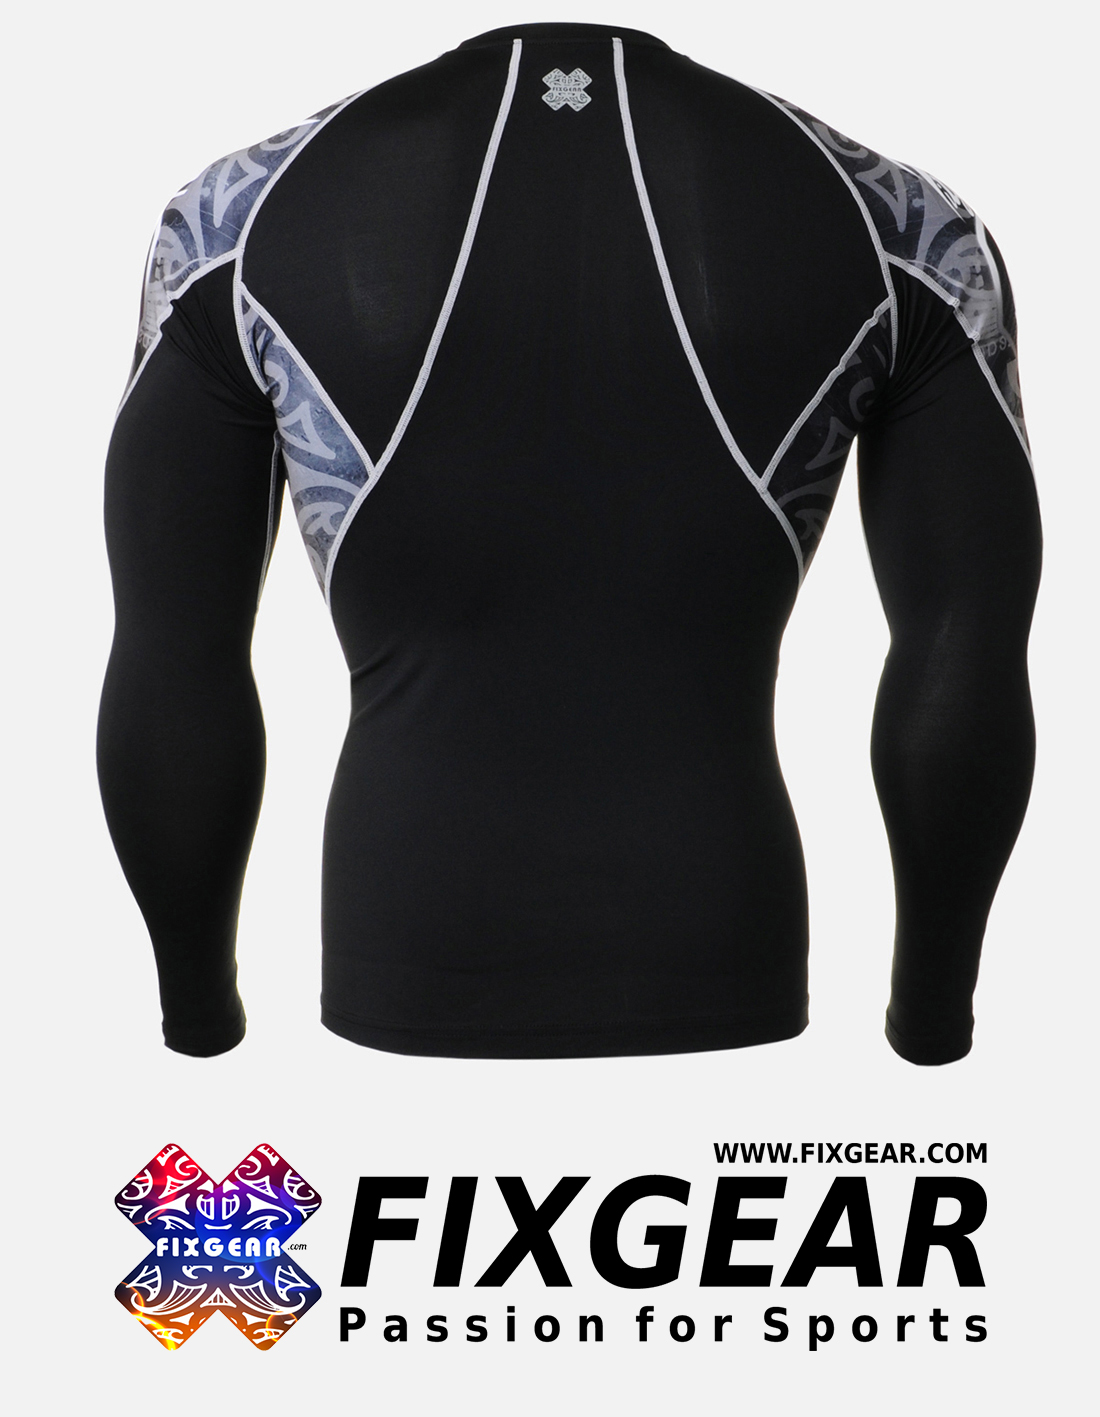 FIXGEAR C2L-B43 Compression Base Layer Shirt